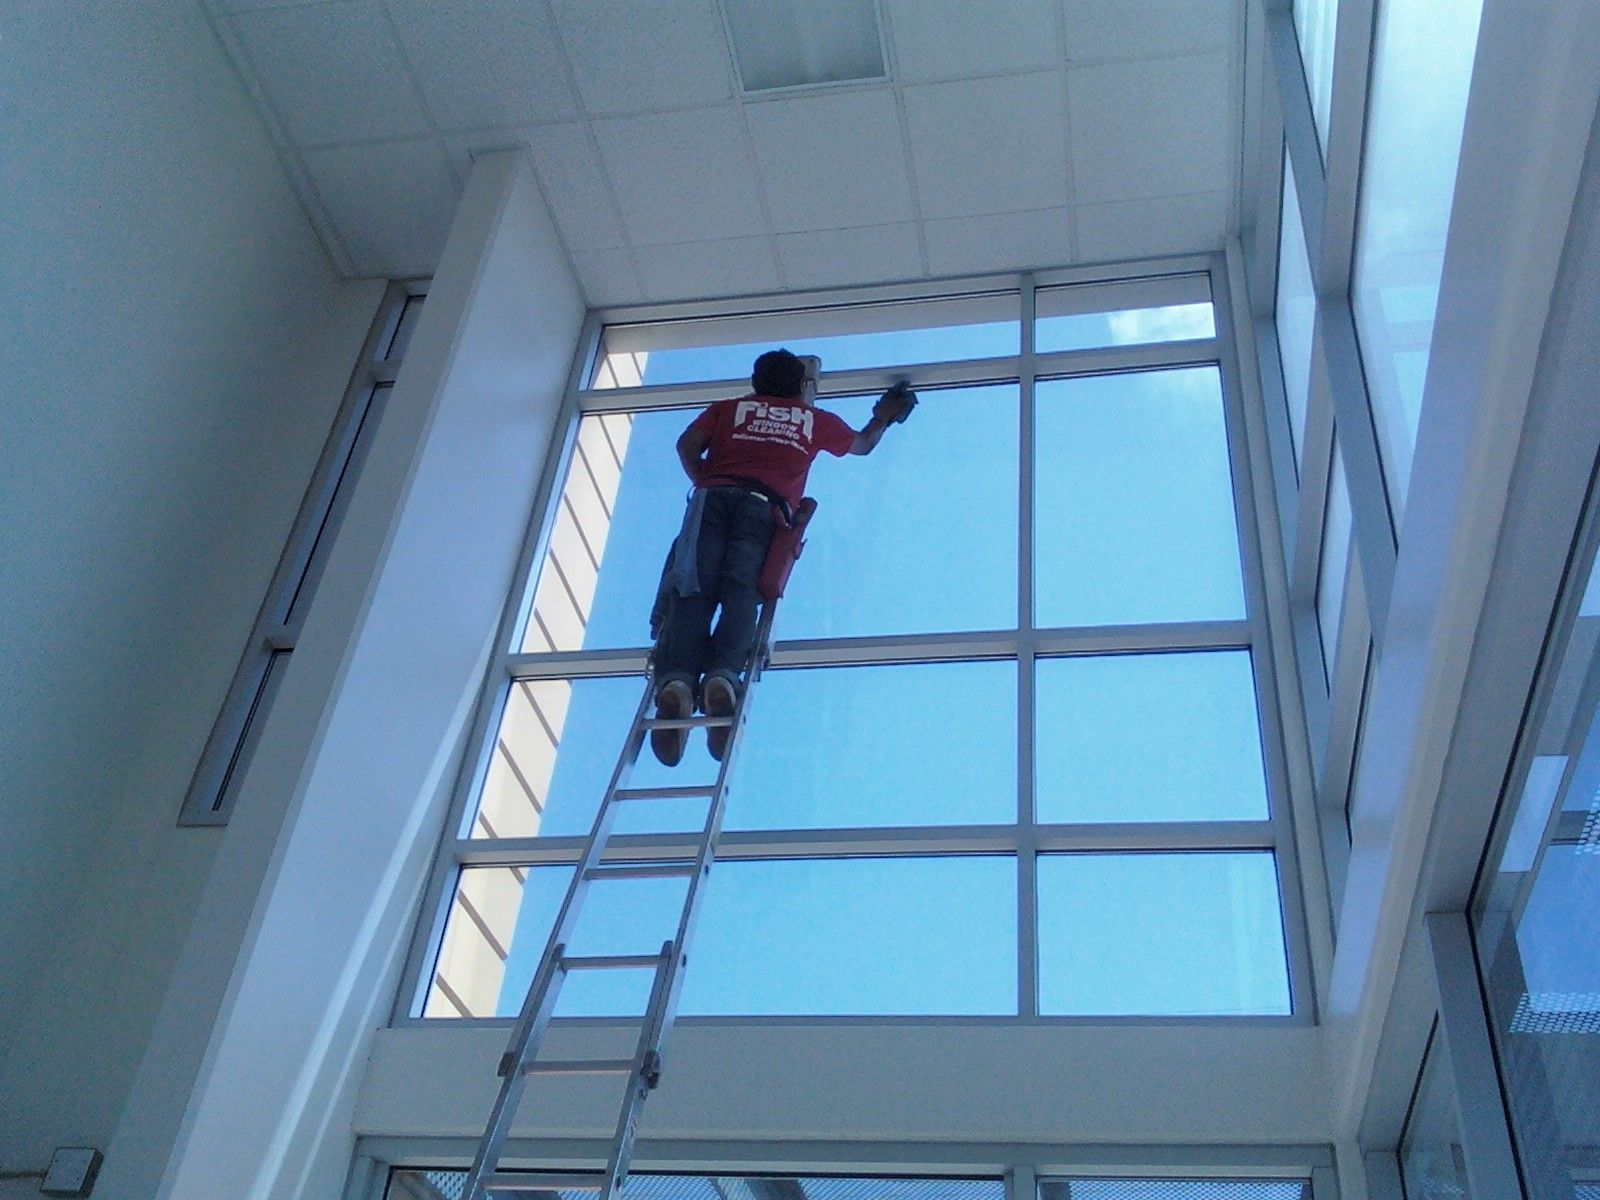 You Can Know More About The Services On Their Site Of Http Www Shimmerglasscleaning Com Au Window Cleaning Services Building Maintenance Commercial Cleaning